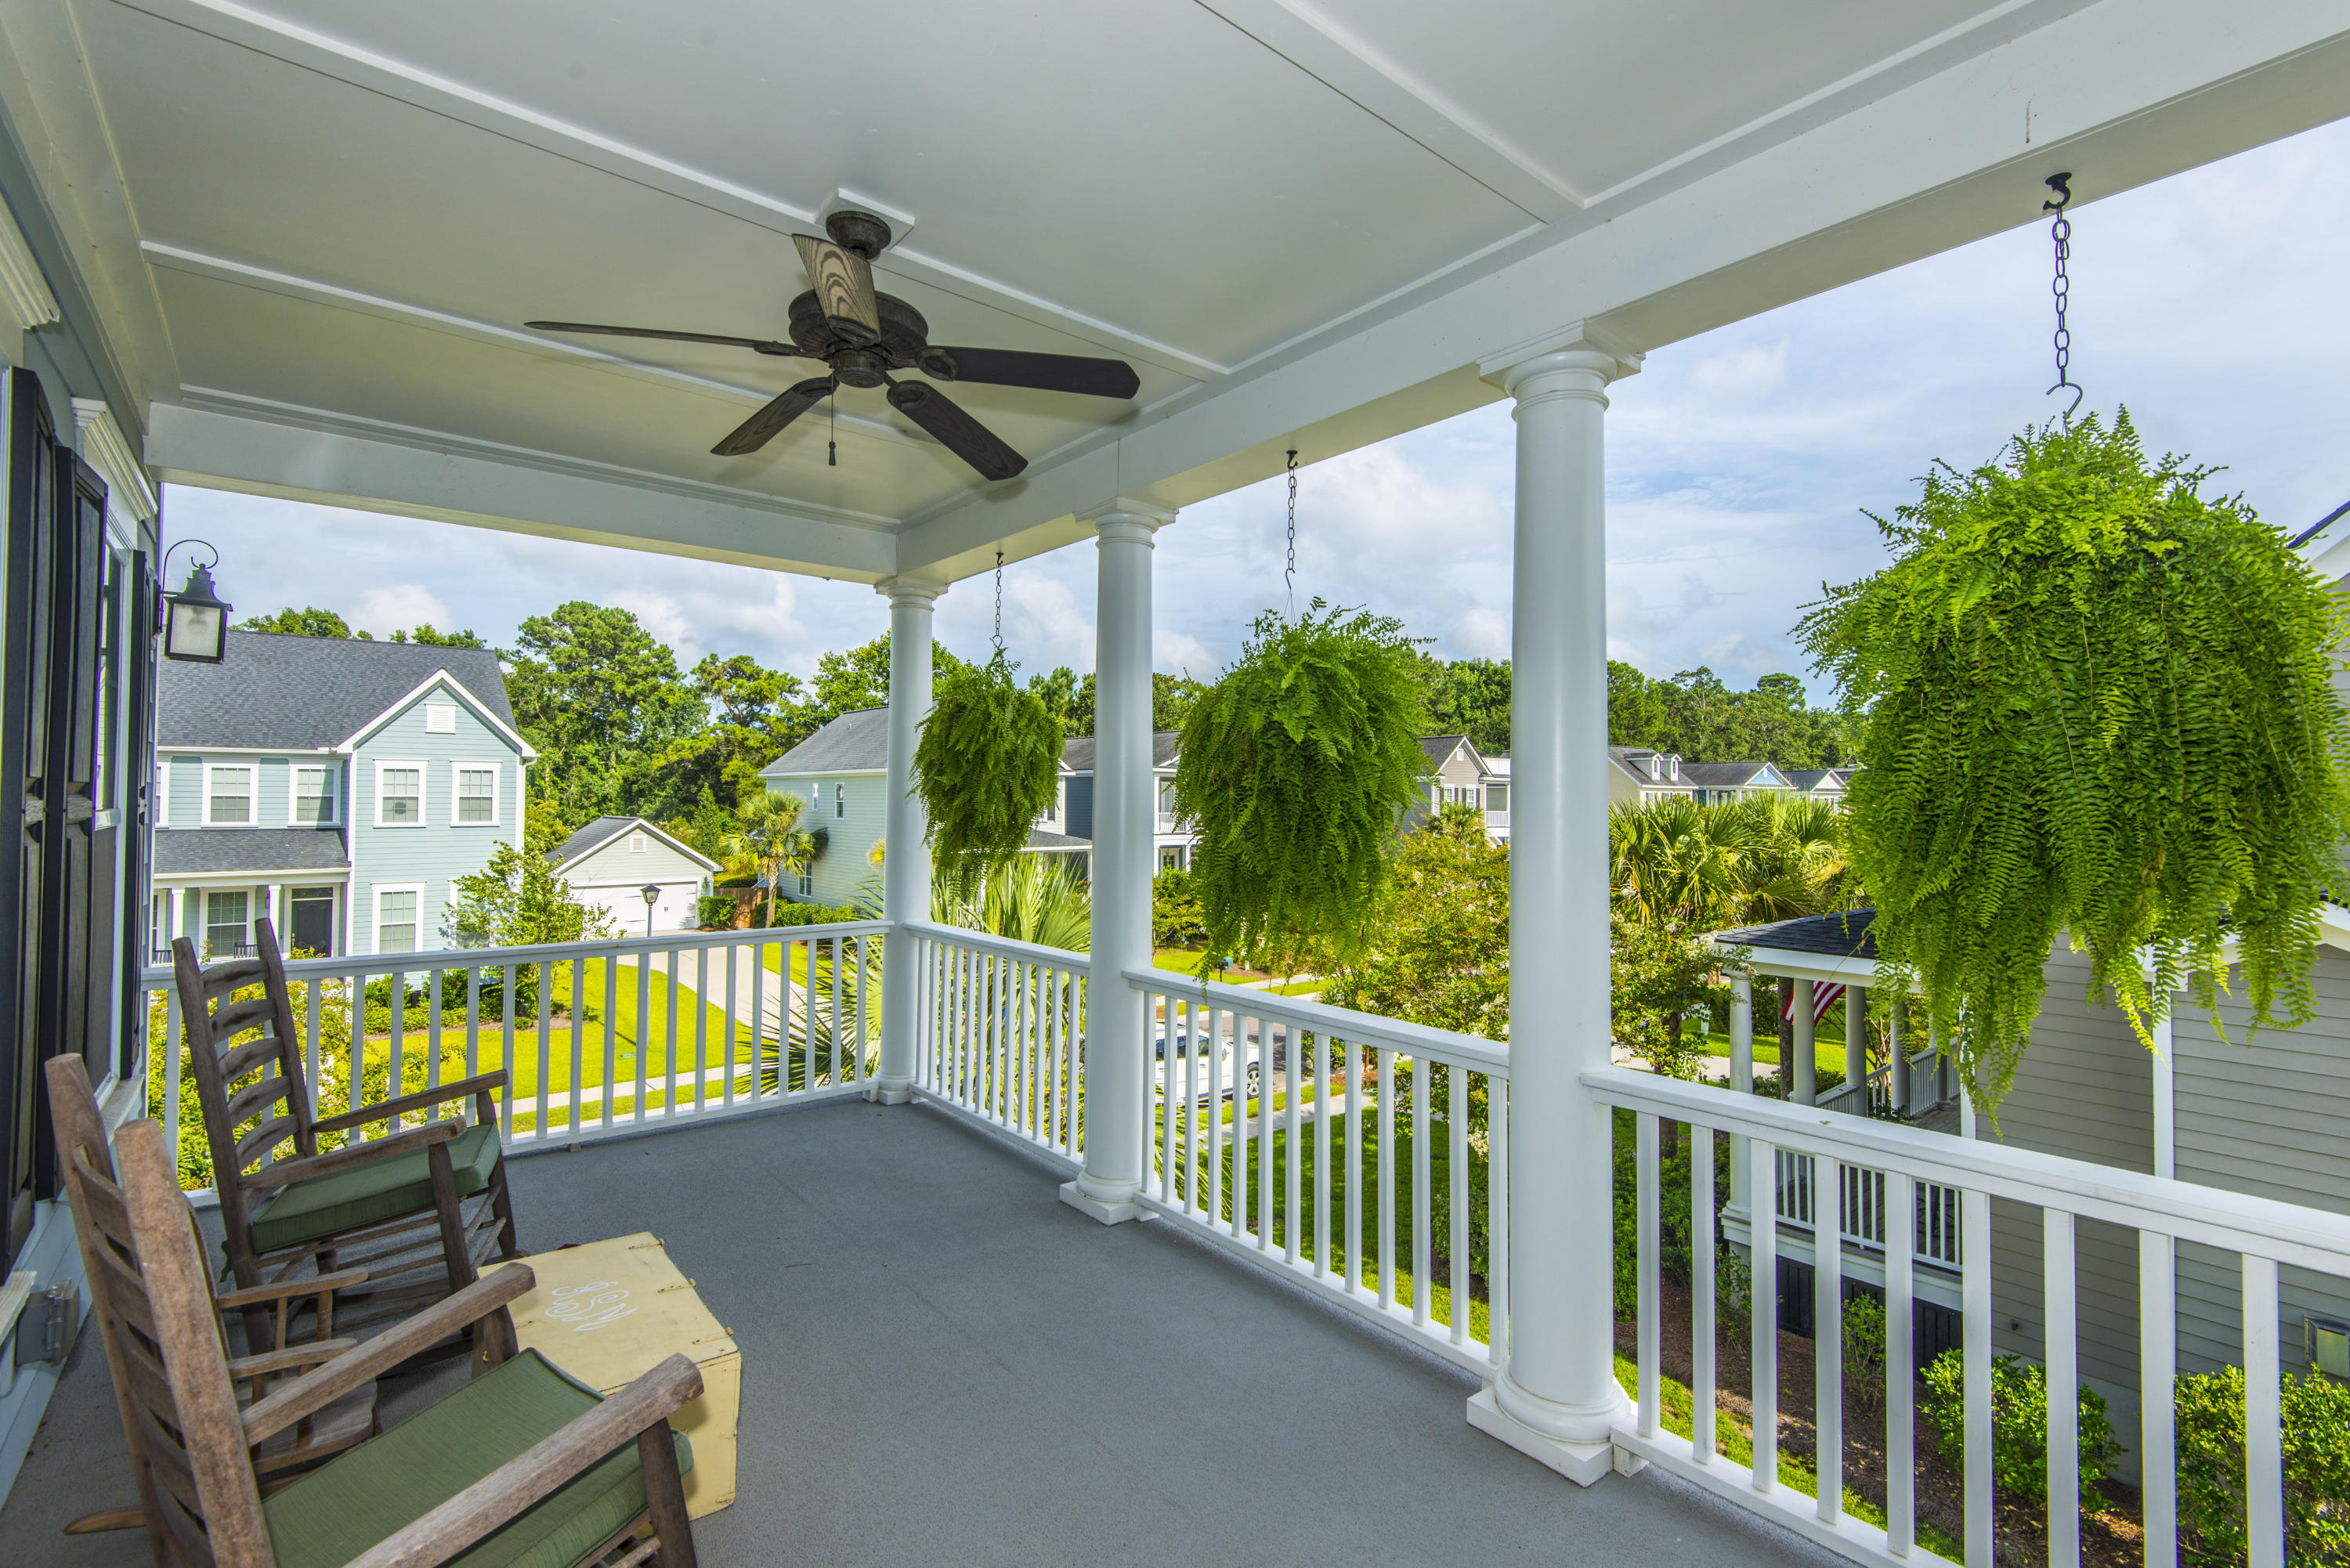 Cloudbreak Court Homes For Sale - 627 Cloudbreak, Charleston, SC - 14